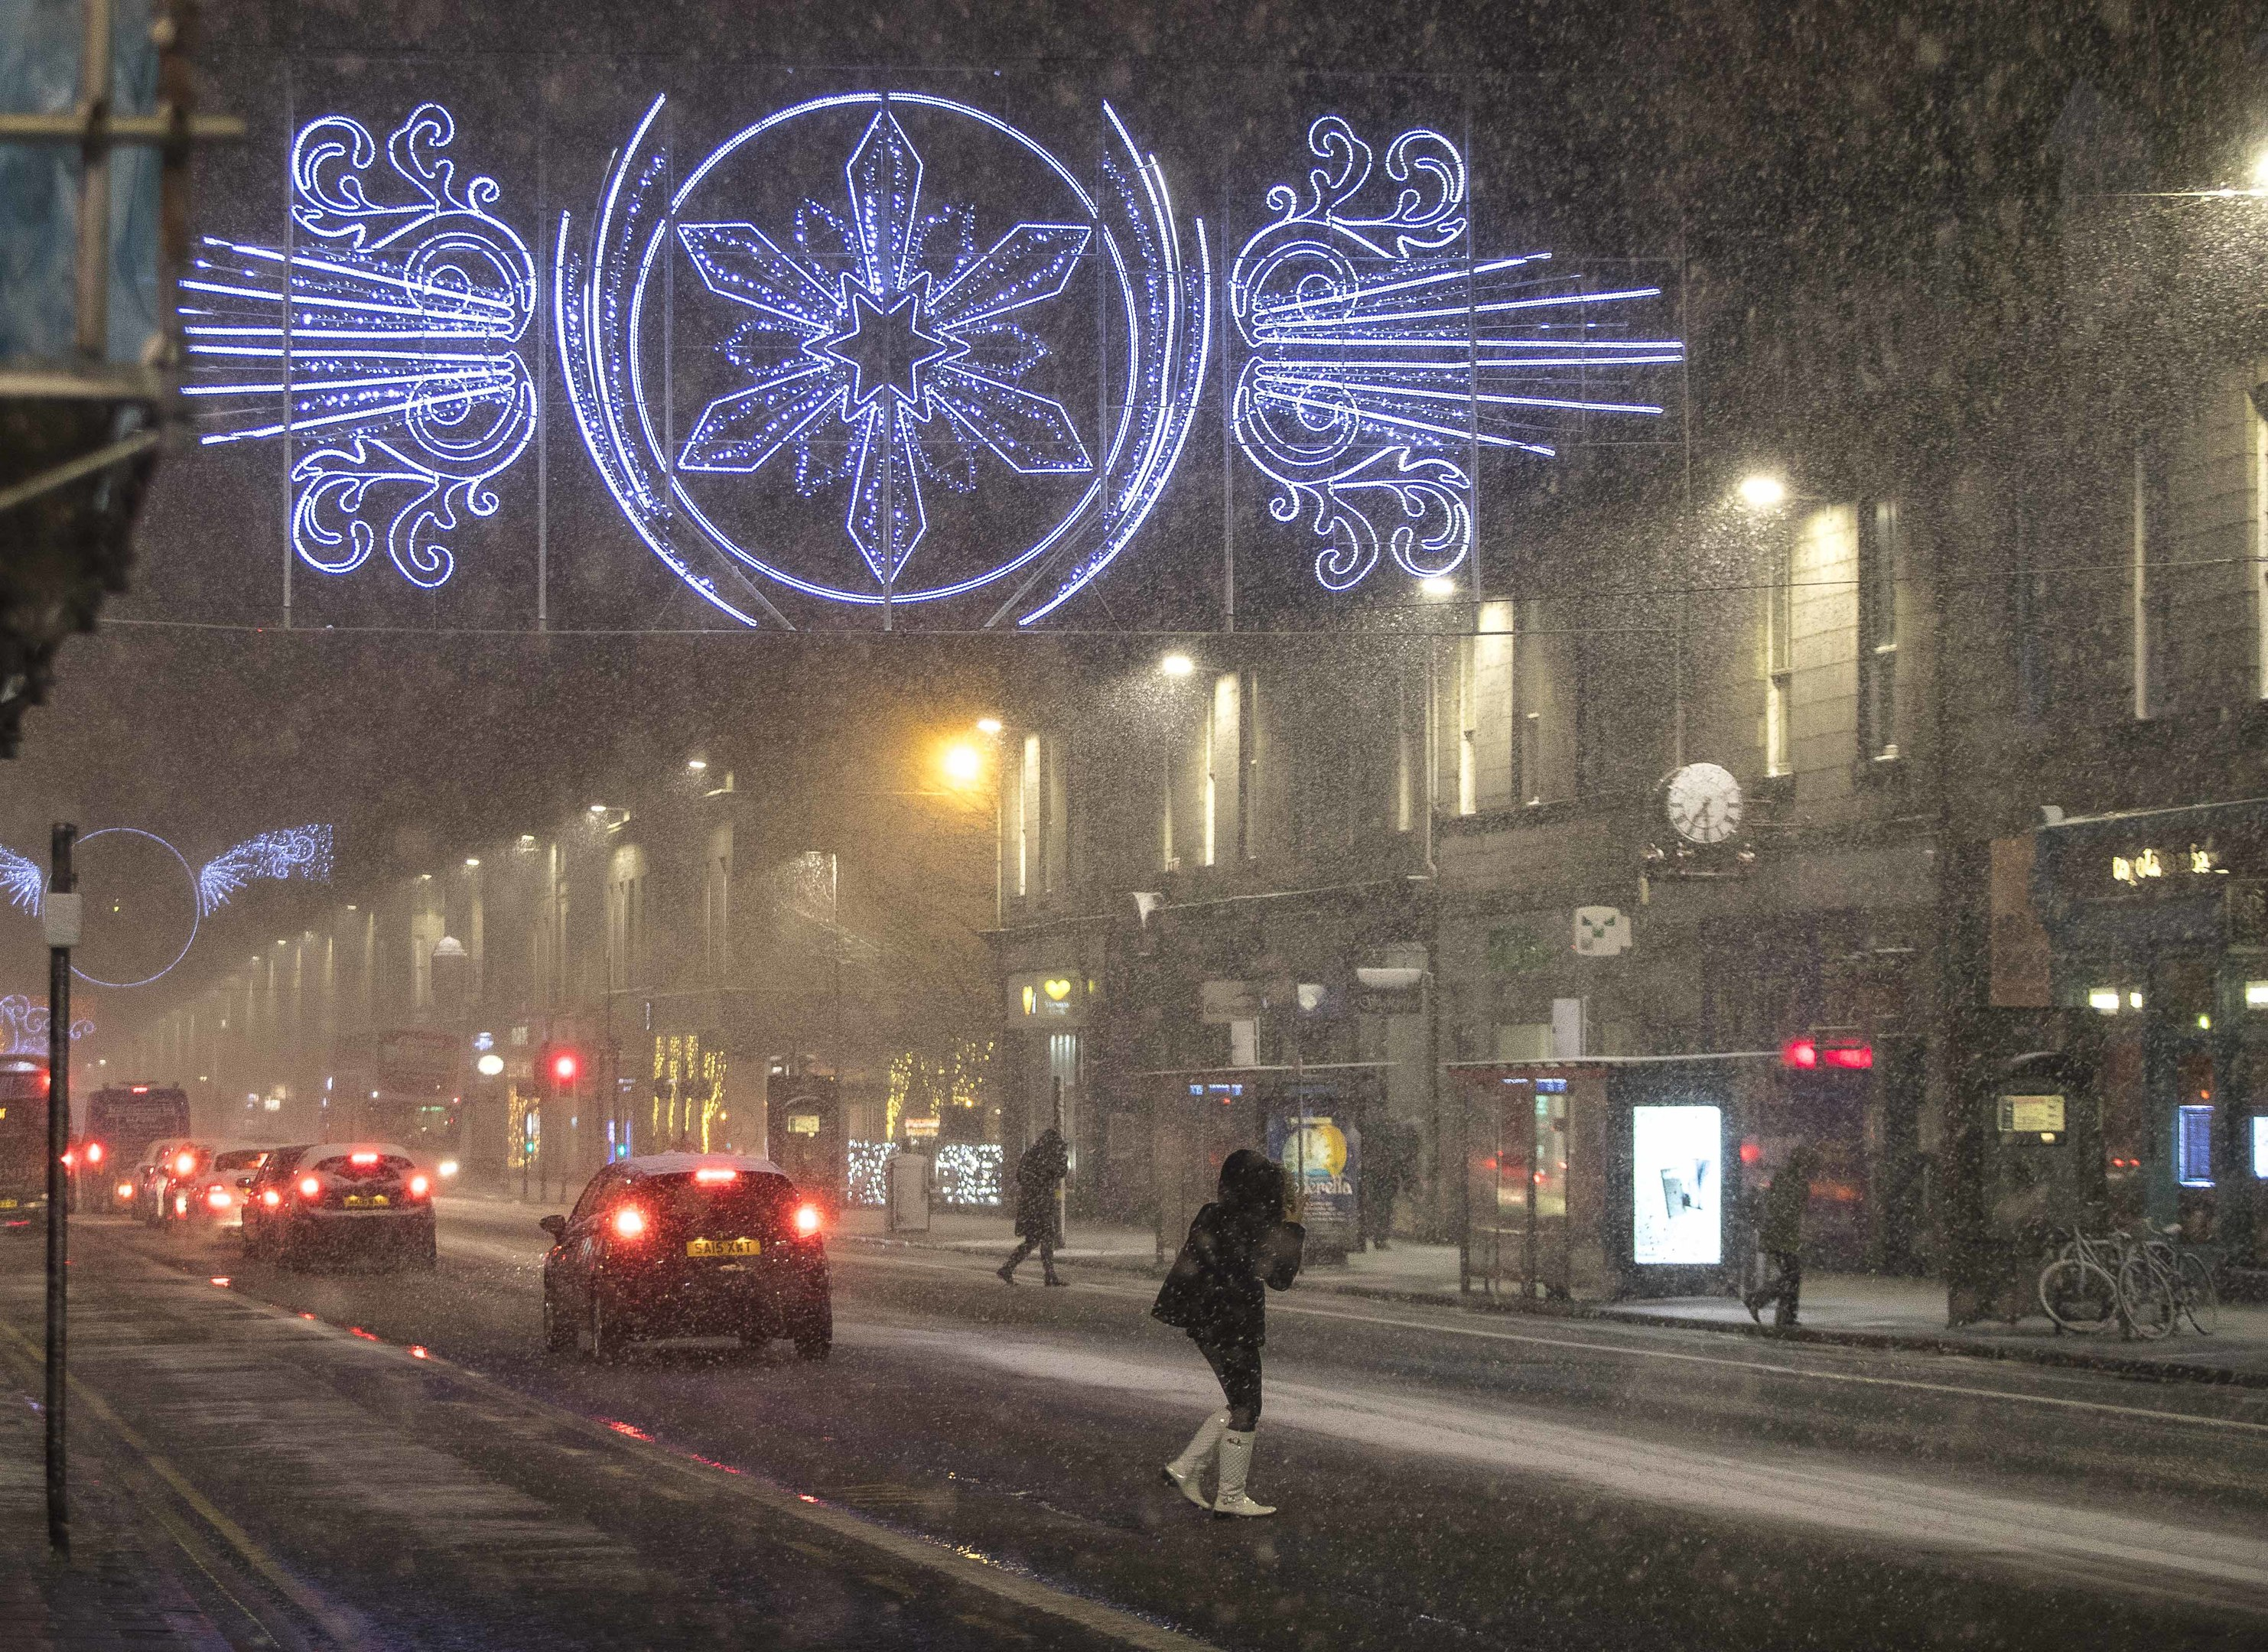 A wintry Union Street this monrning